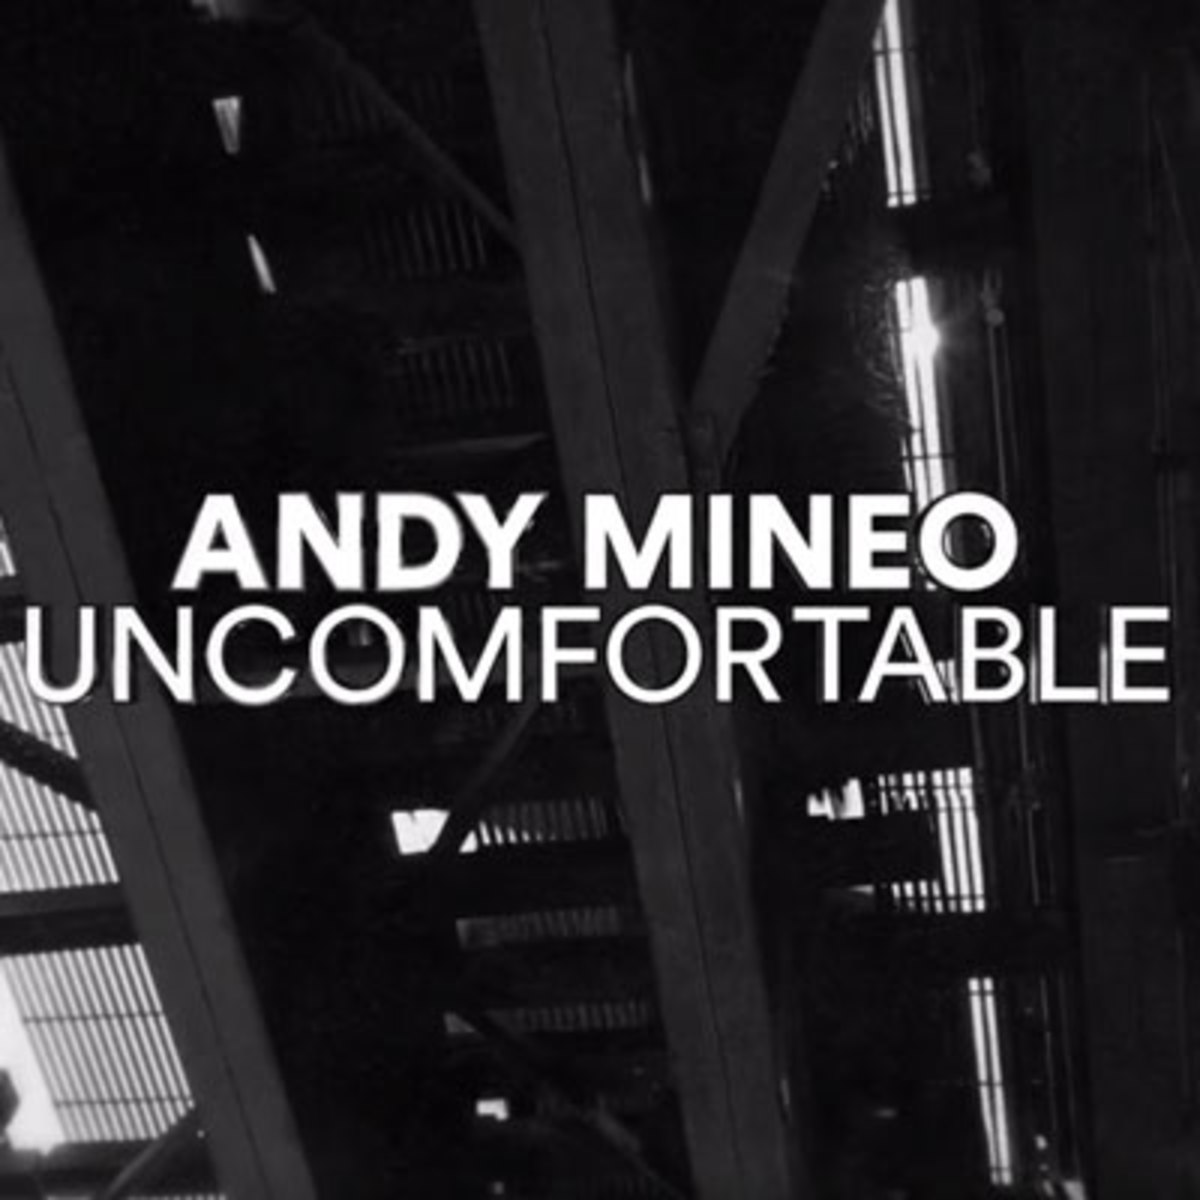 andy-mineo-uncomfortable-video.jpg